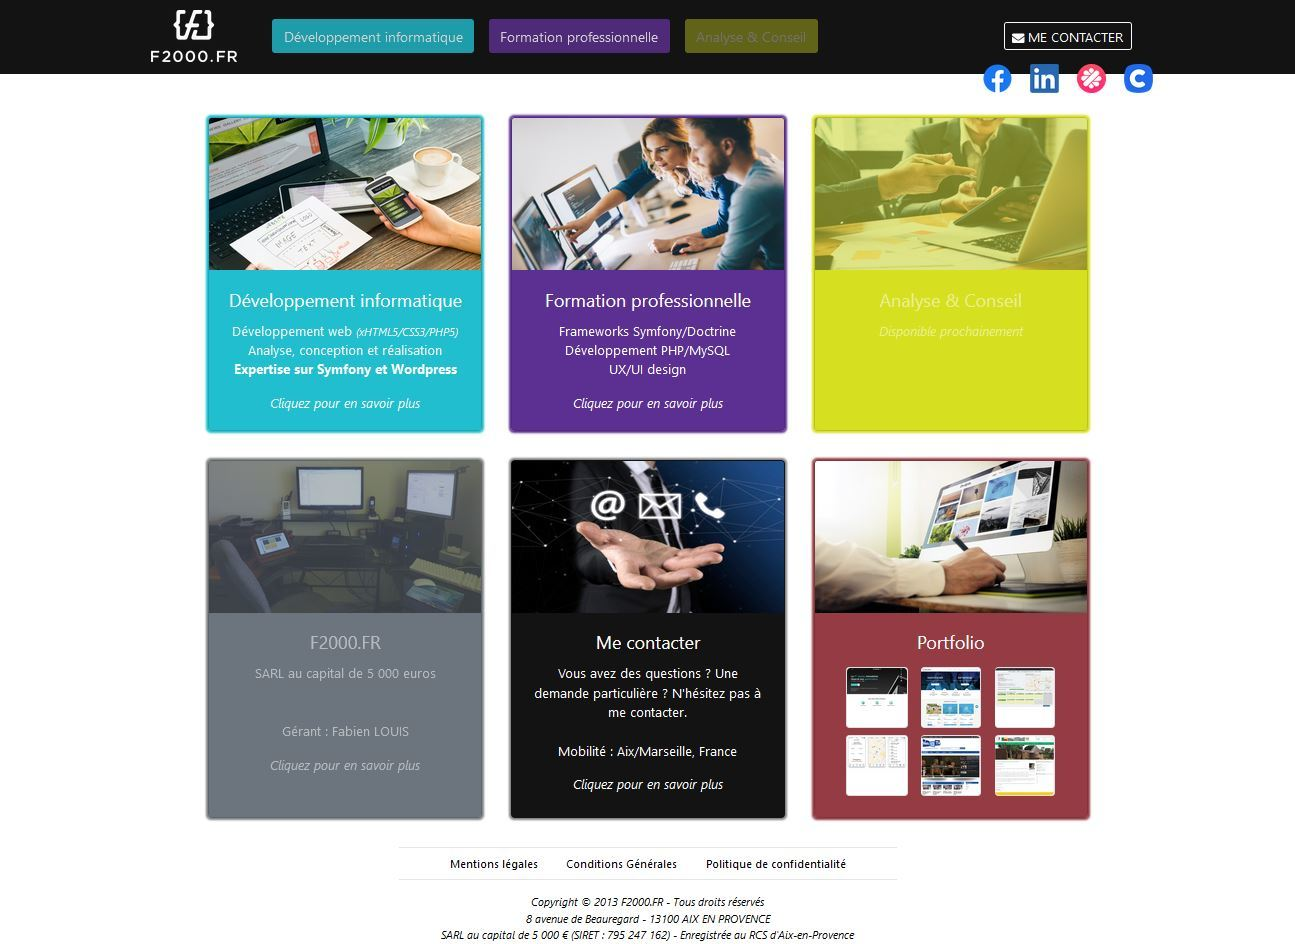 Site professionnel F2000.FR